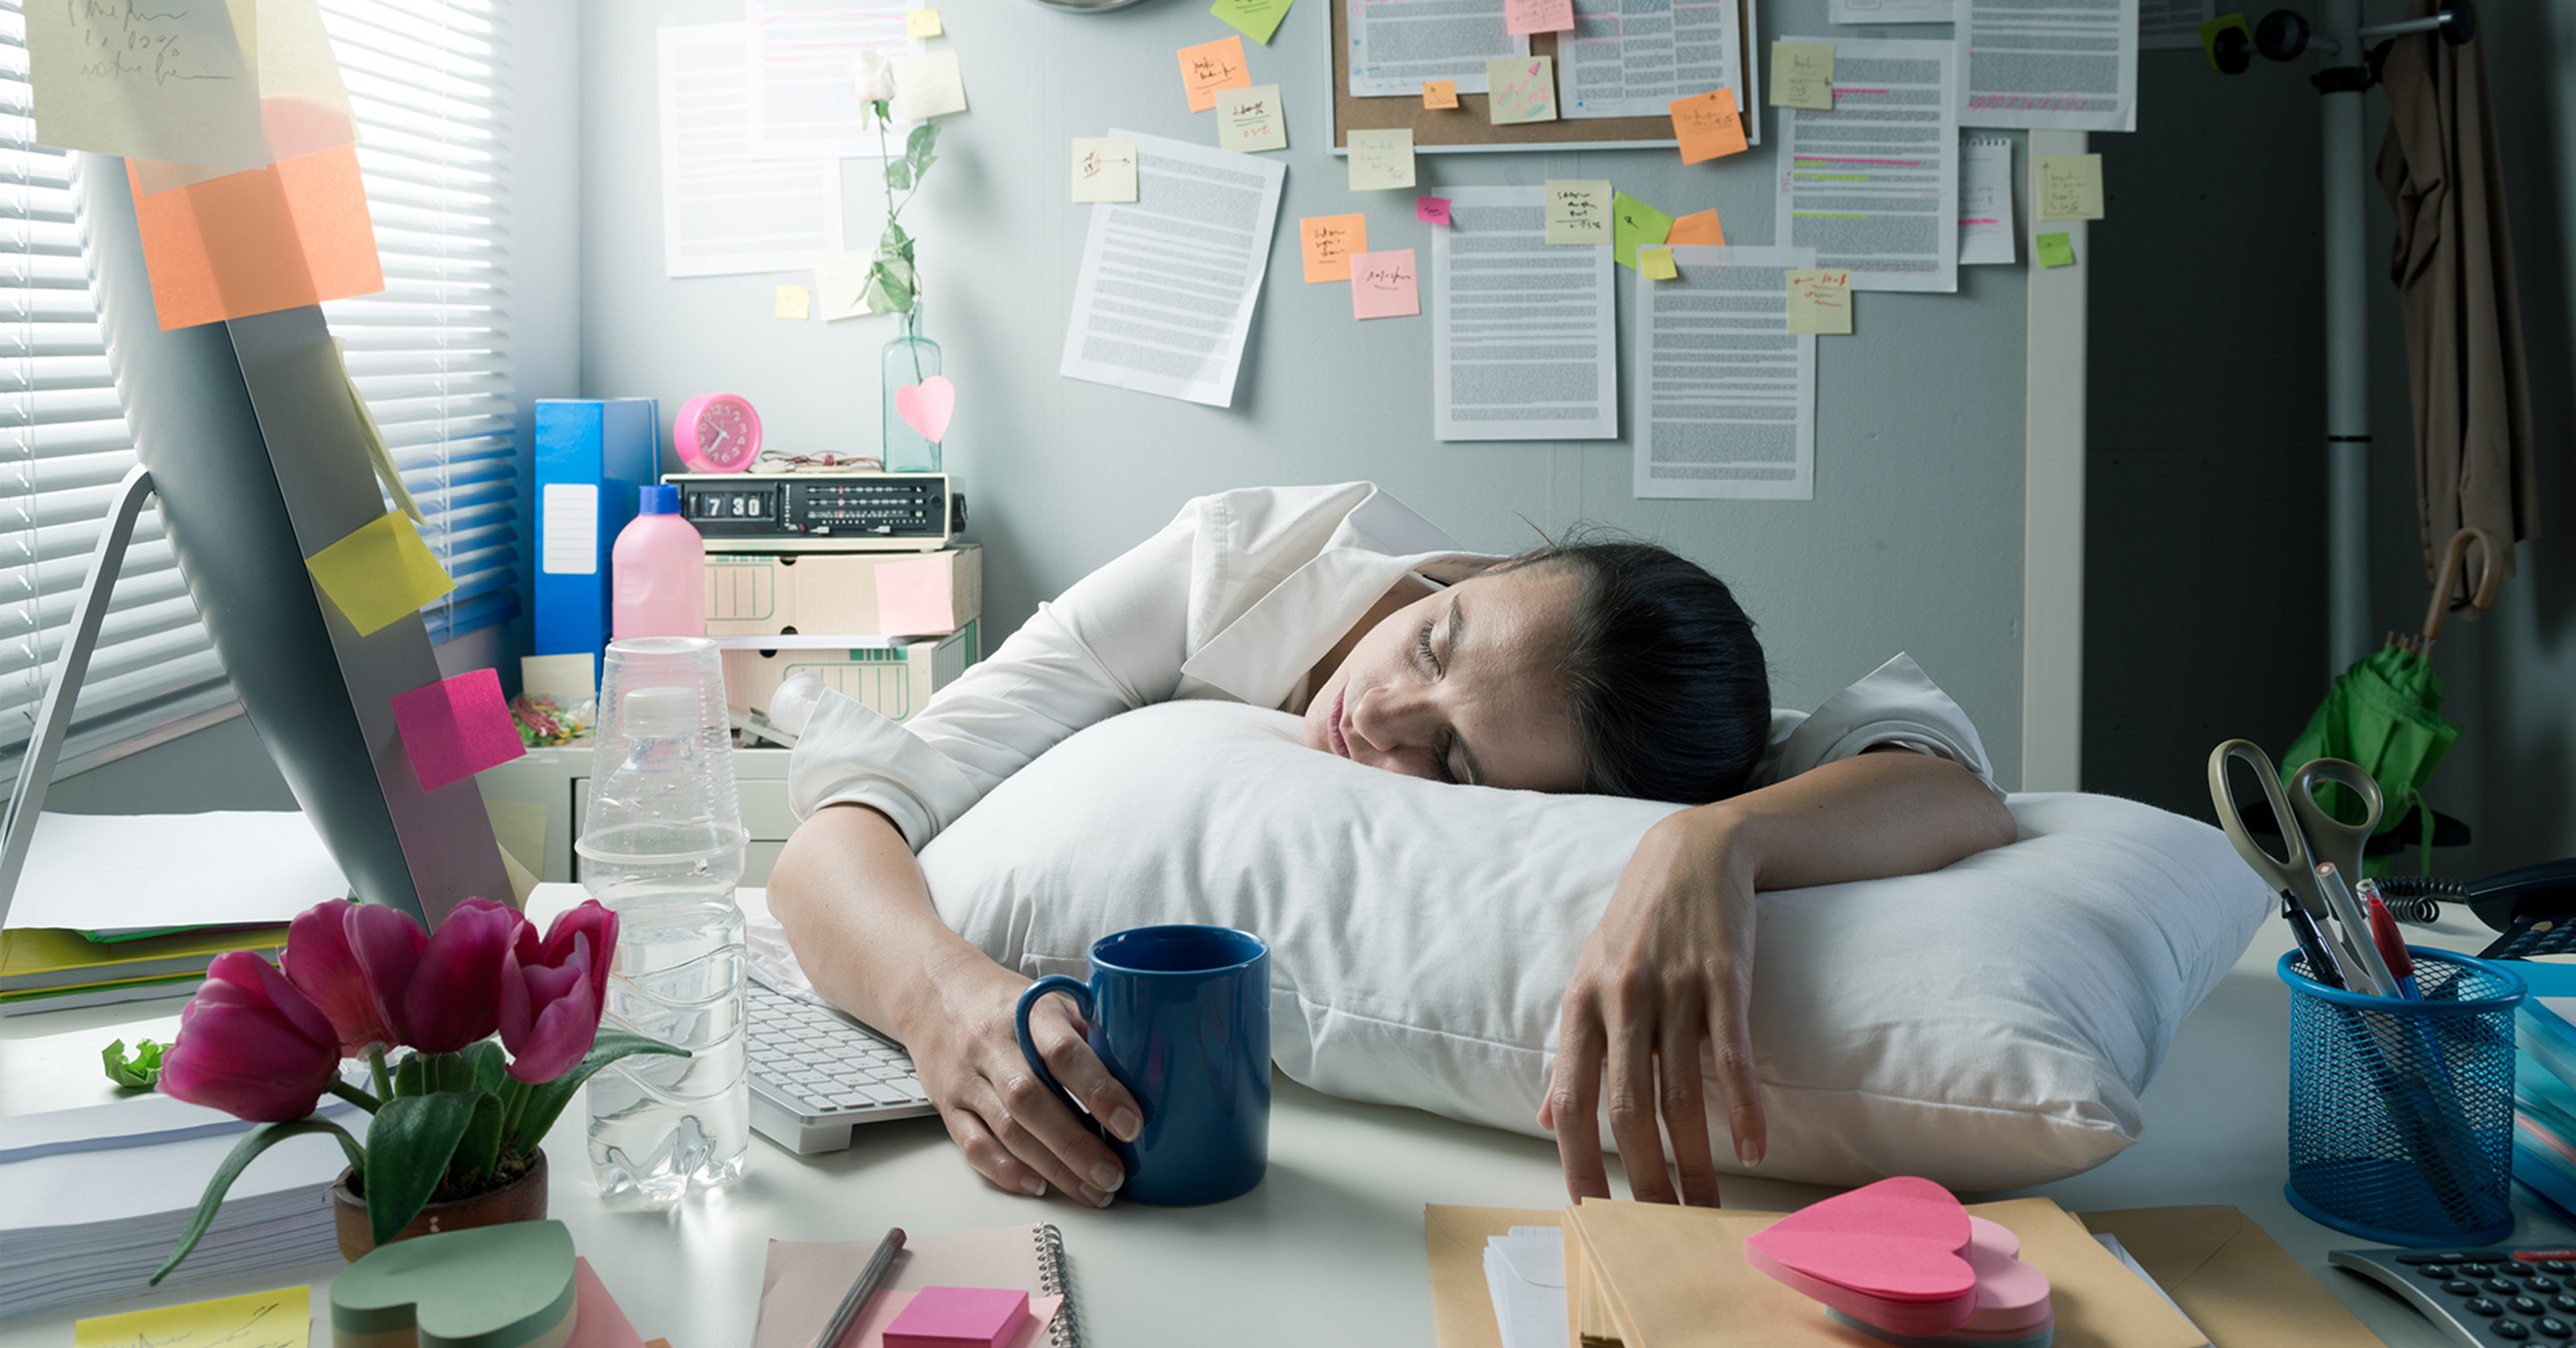 Sleep disorders people do not even know they are sufferers of.